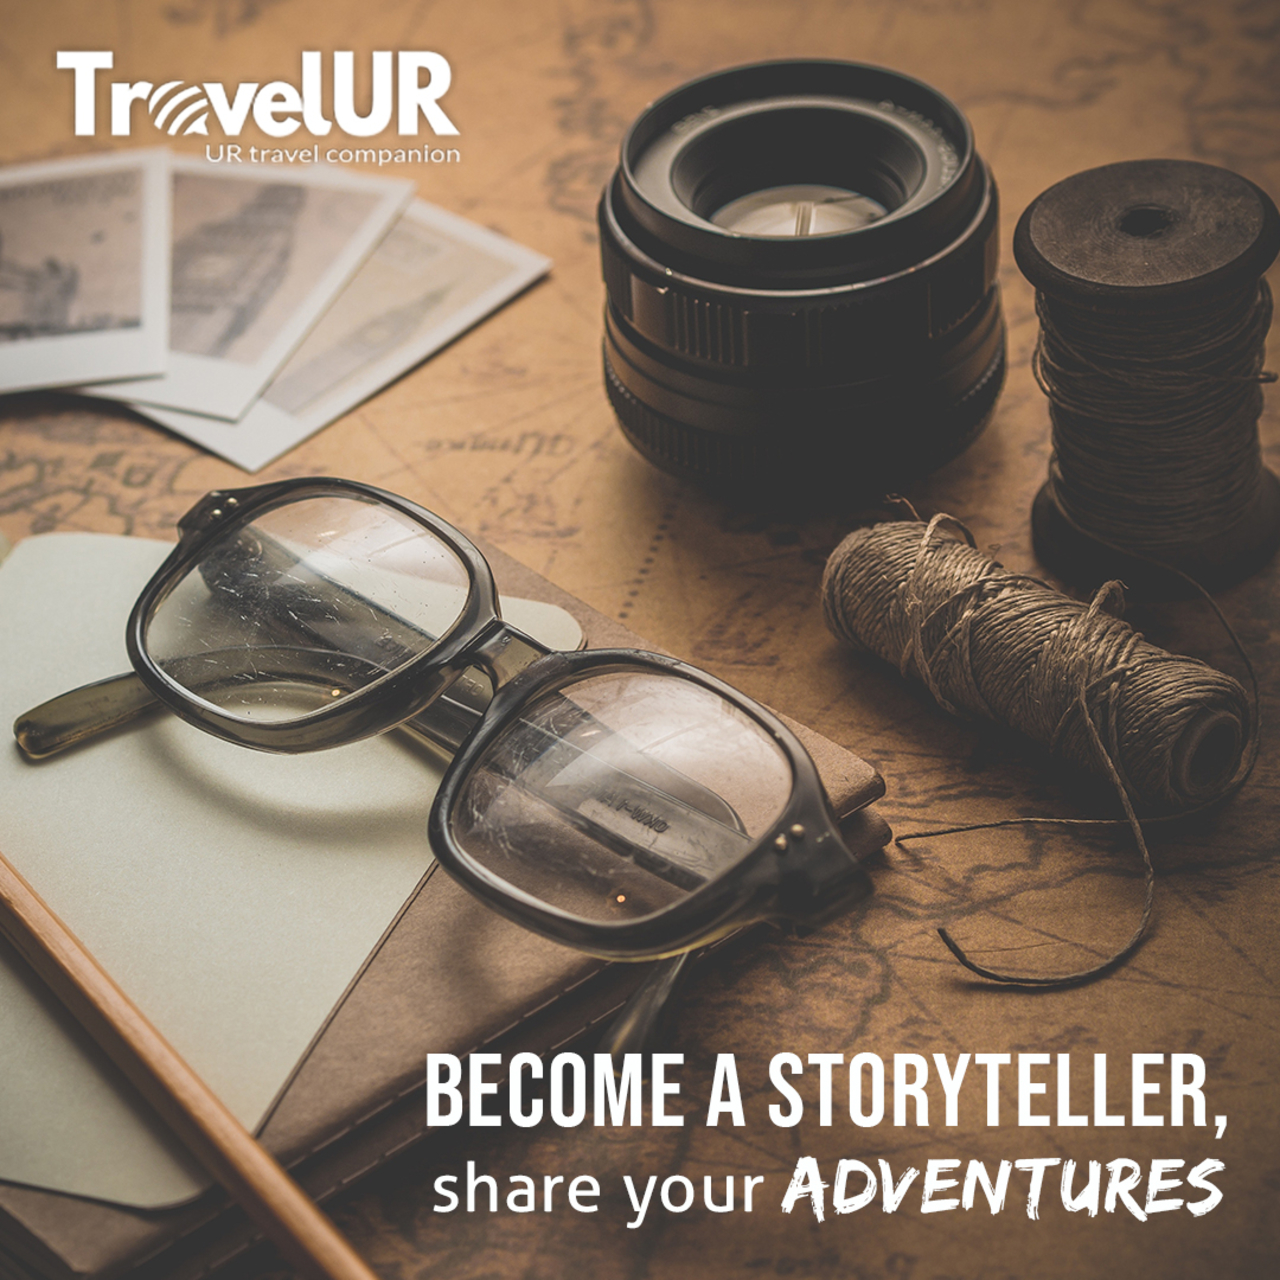 TravelUR